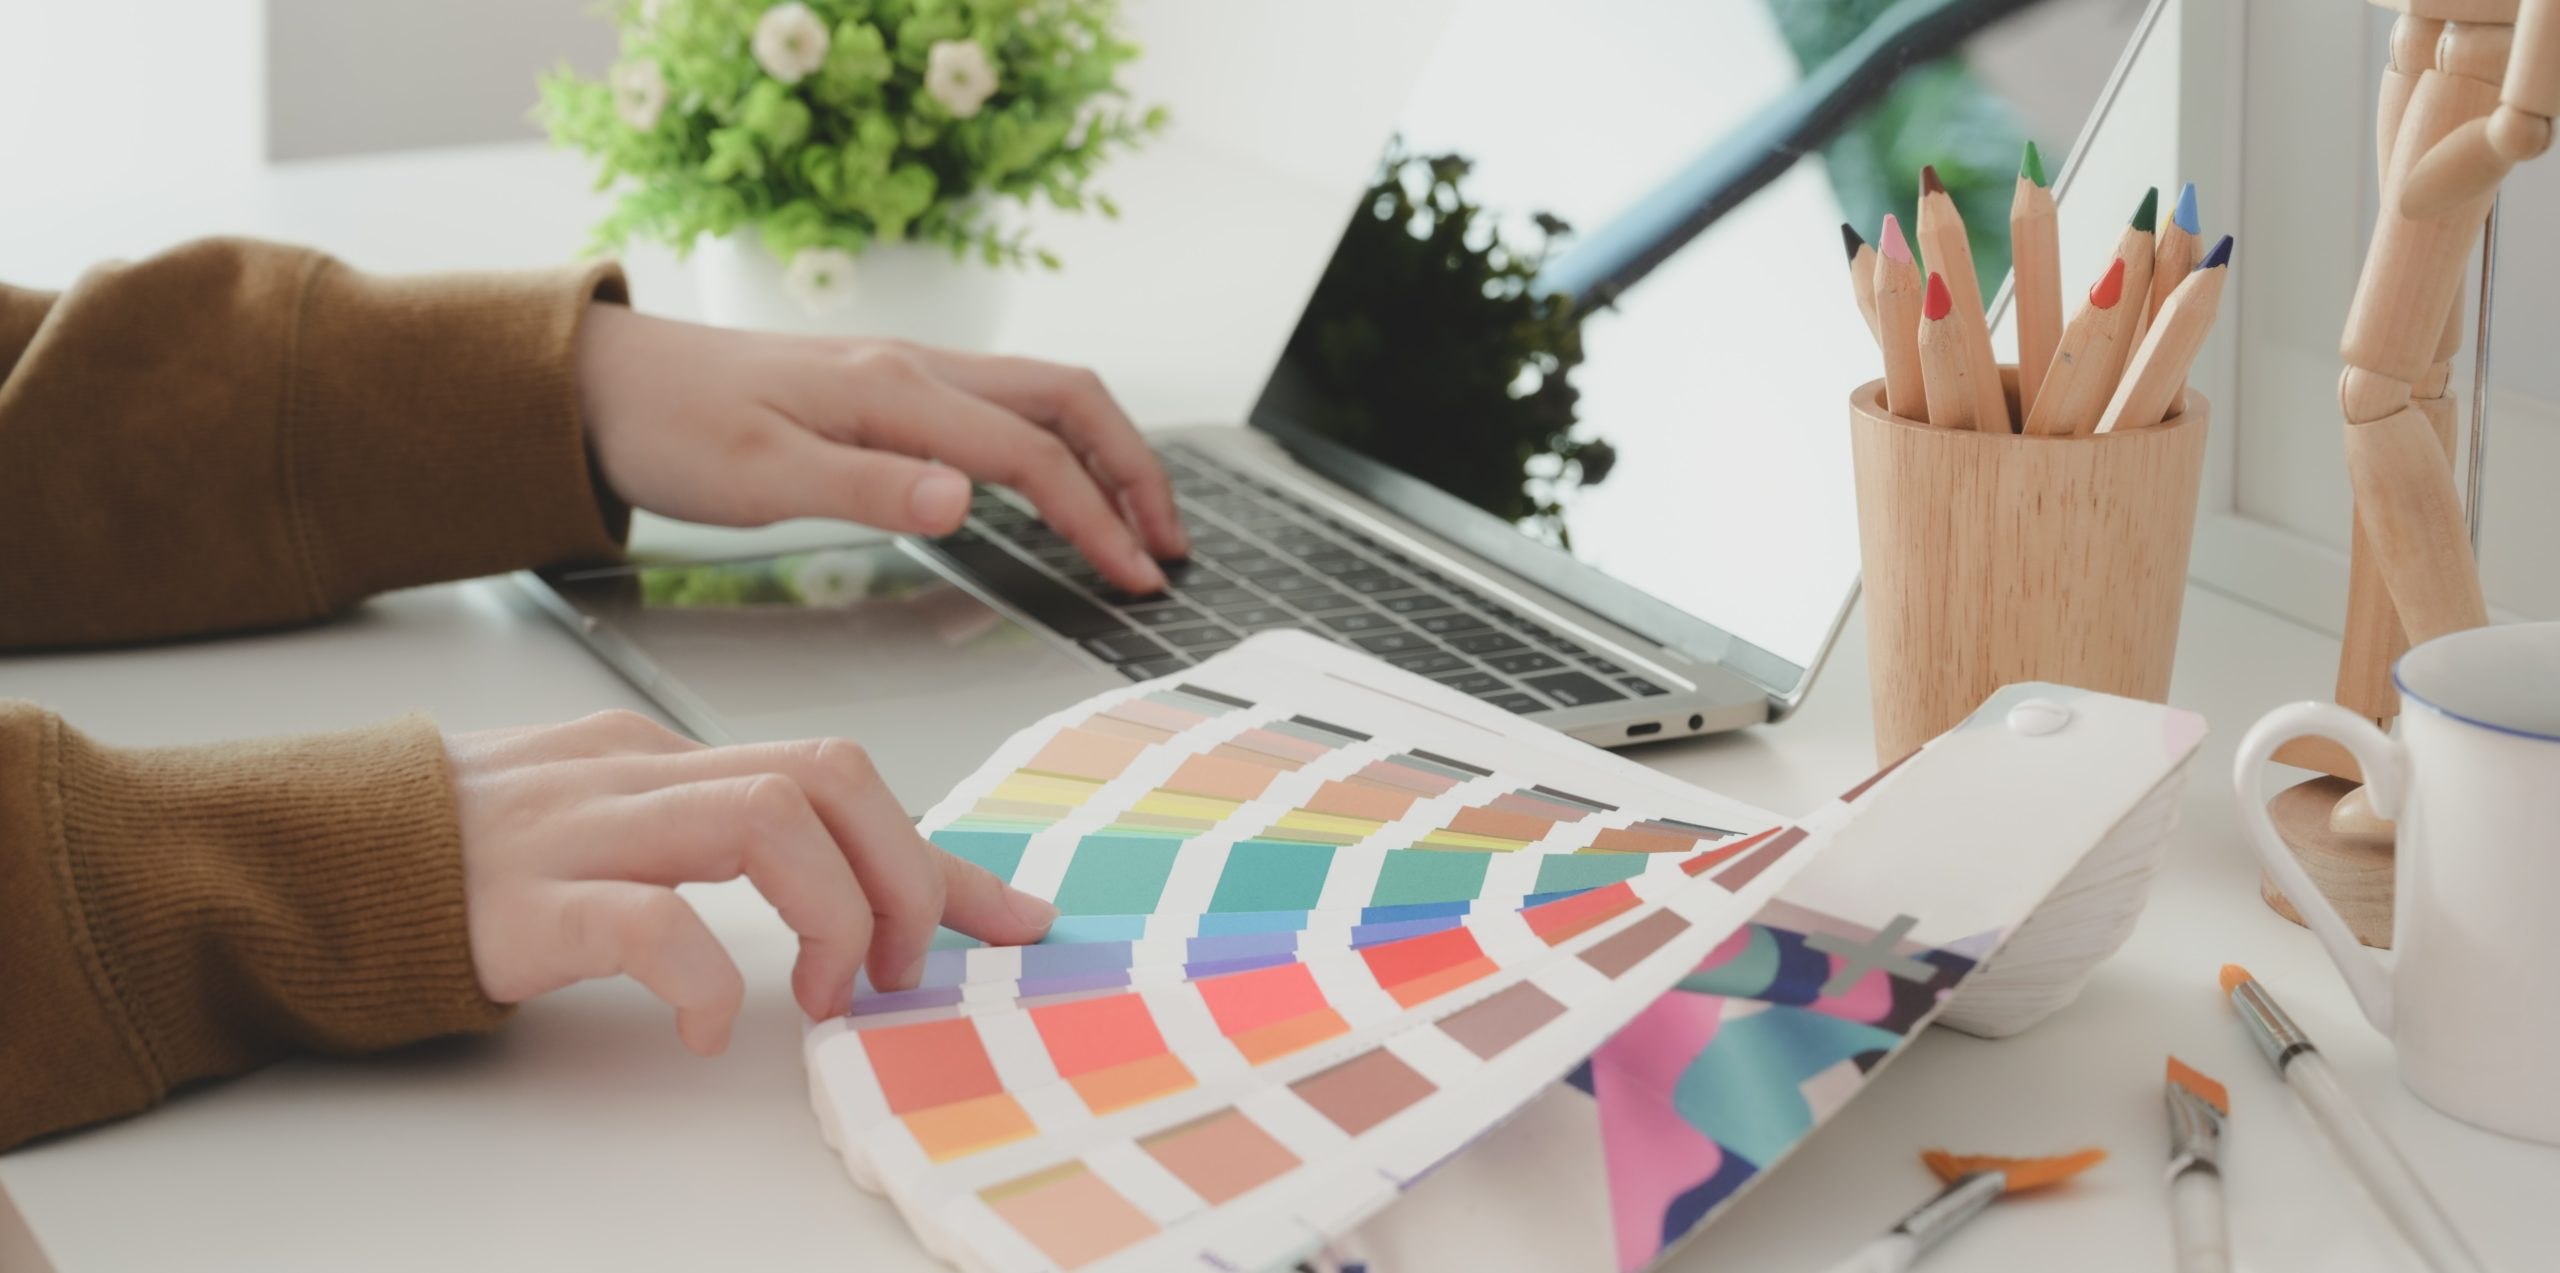 How to strategically leverage color use in graphic design